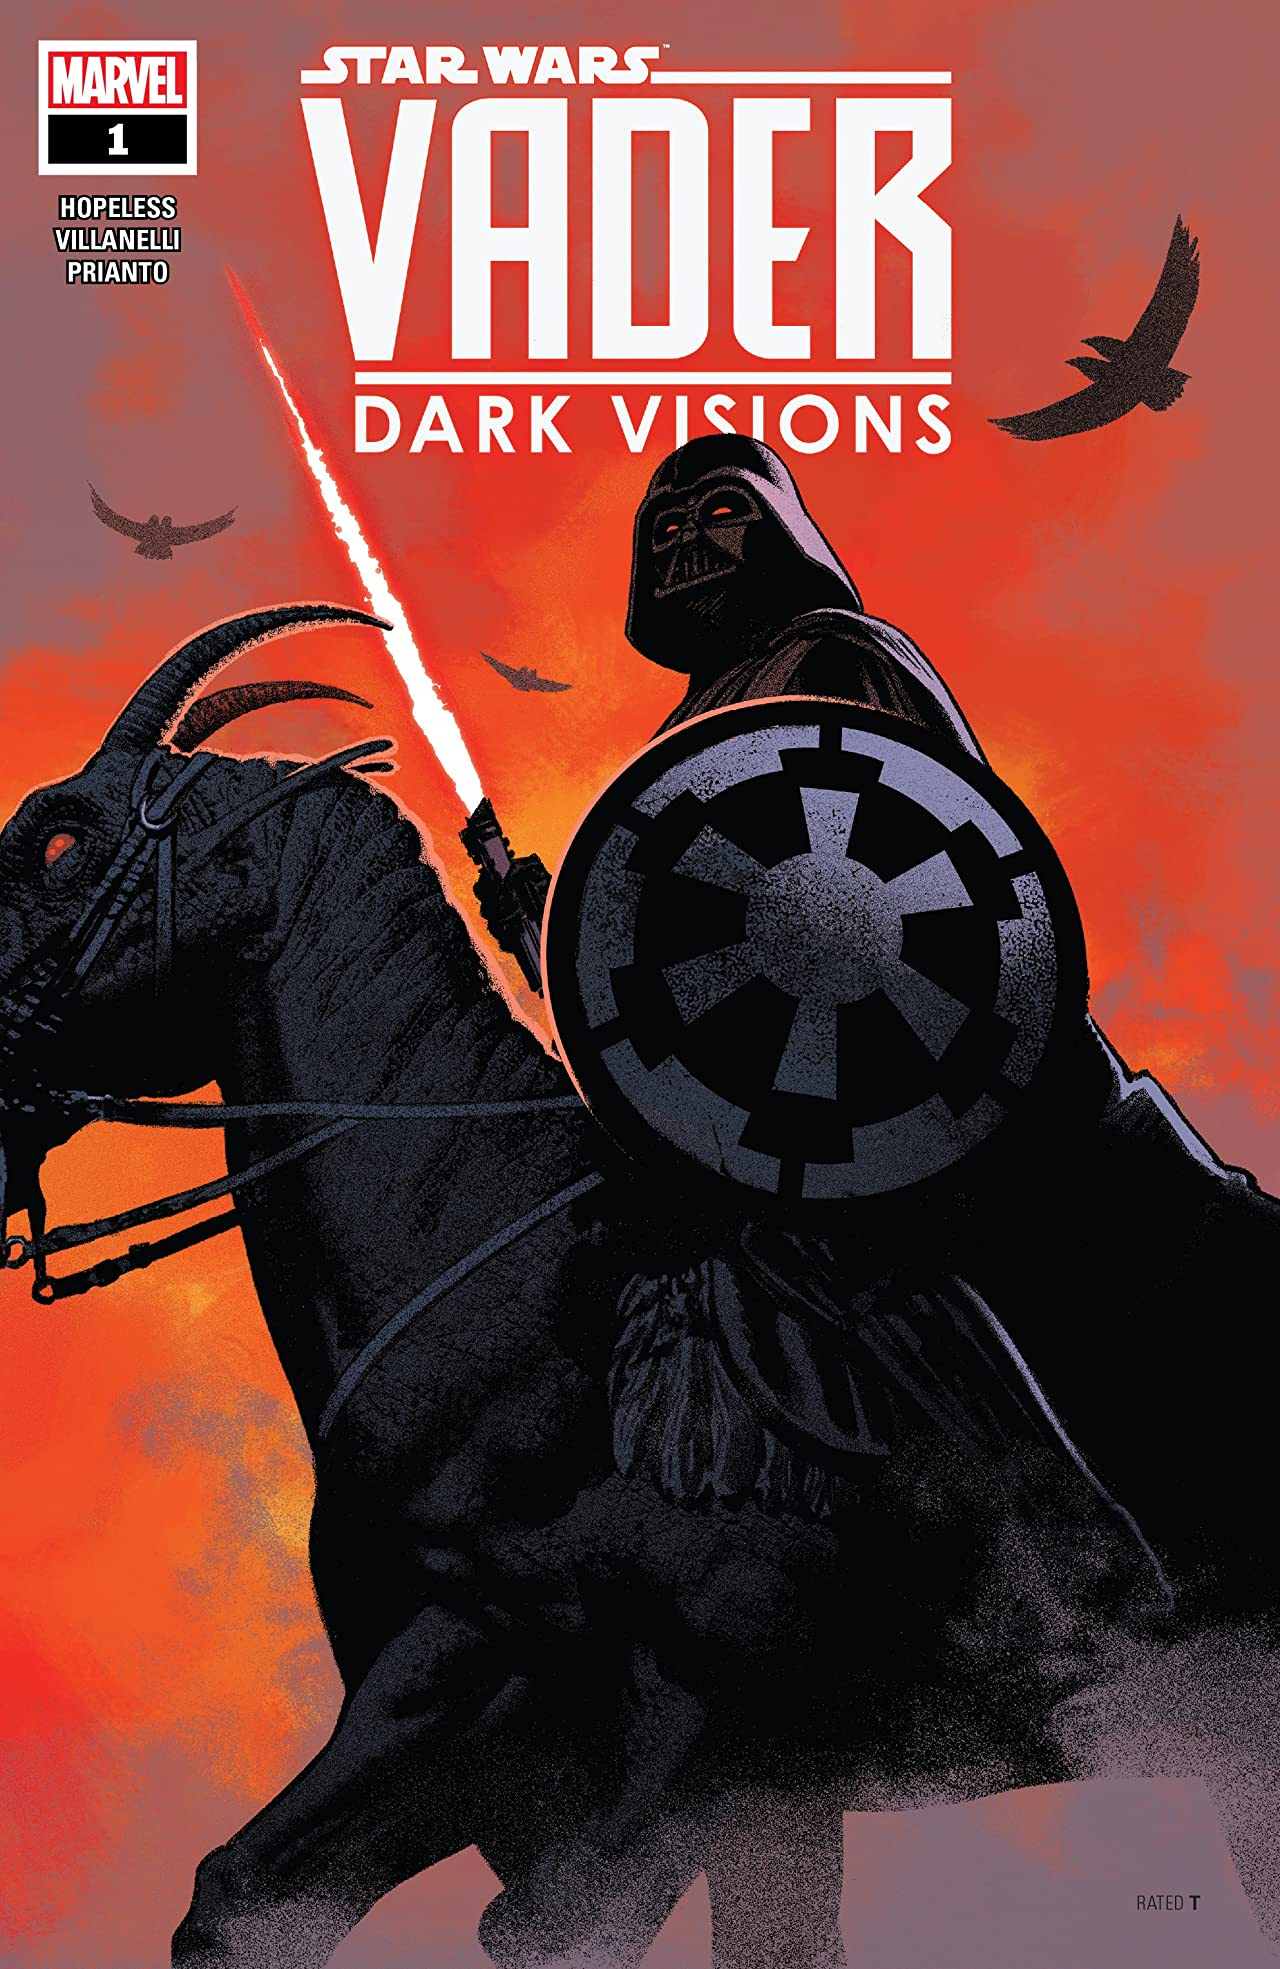 Star Wars: Vader - Dark Visions (2019) #1 (of 5)